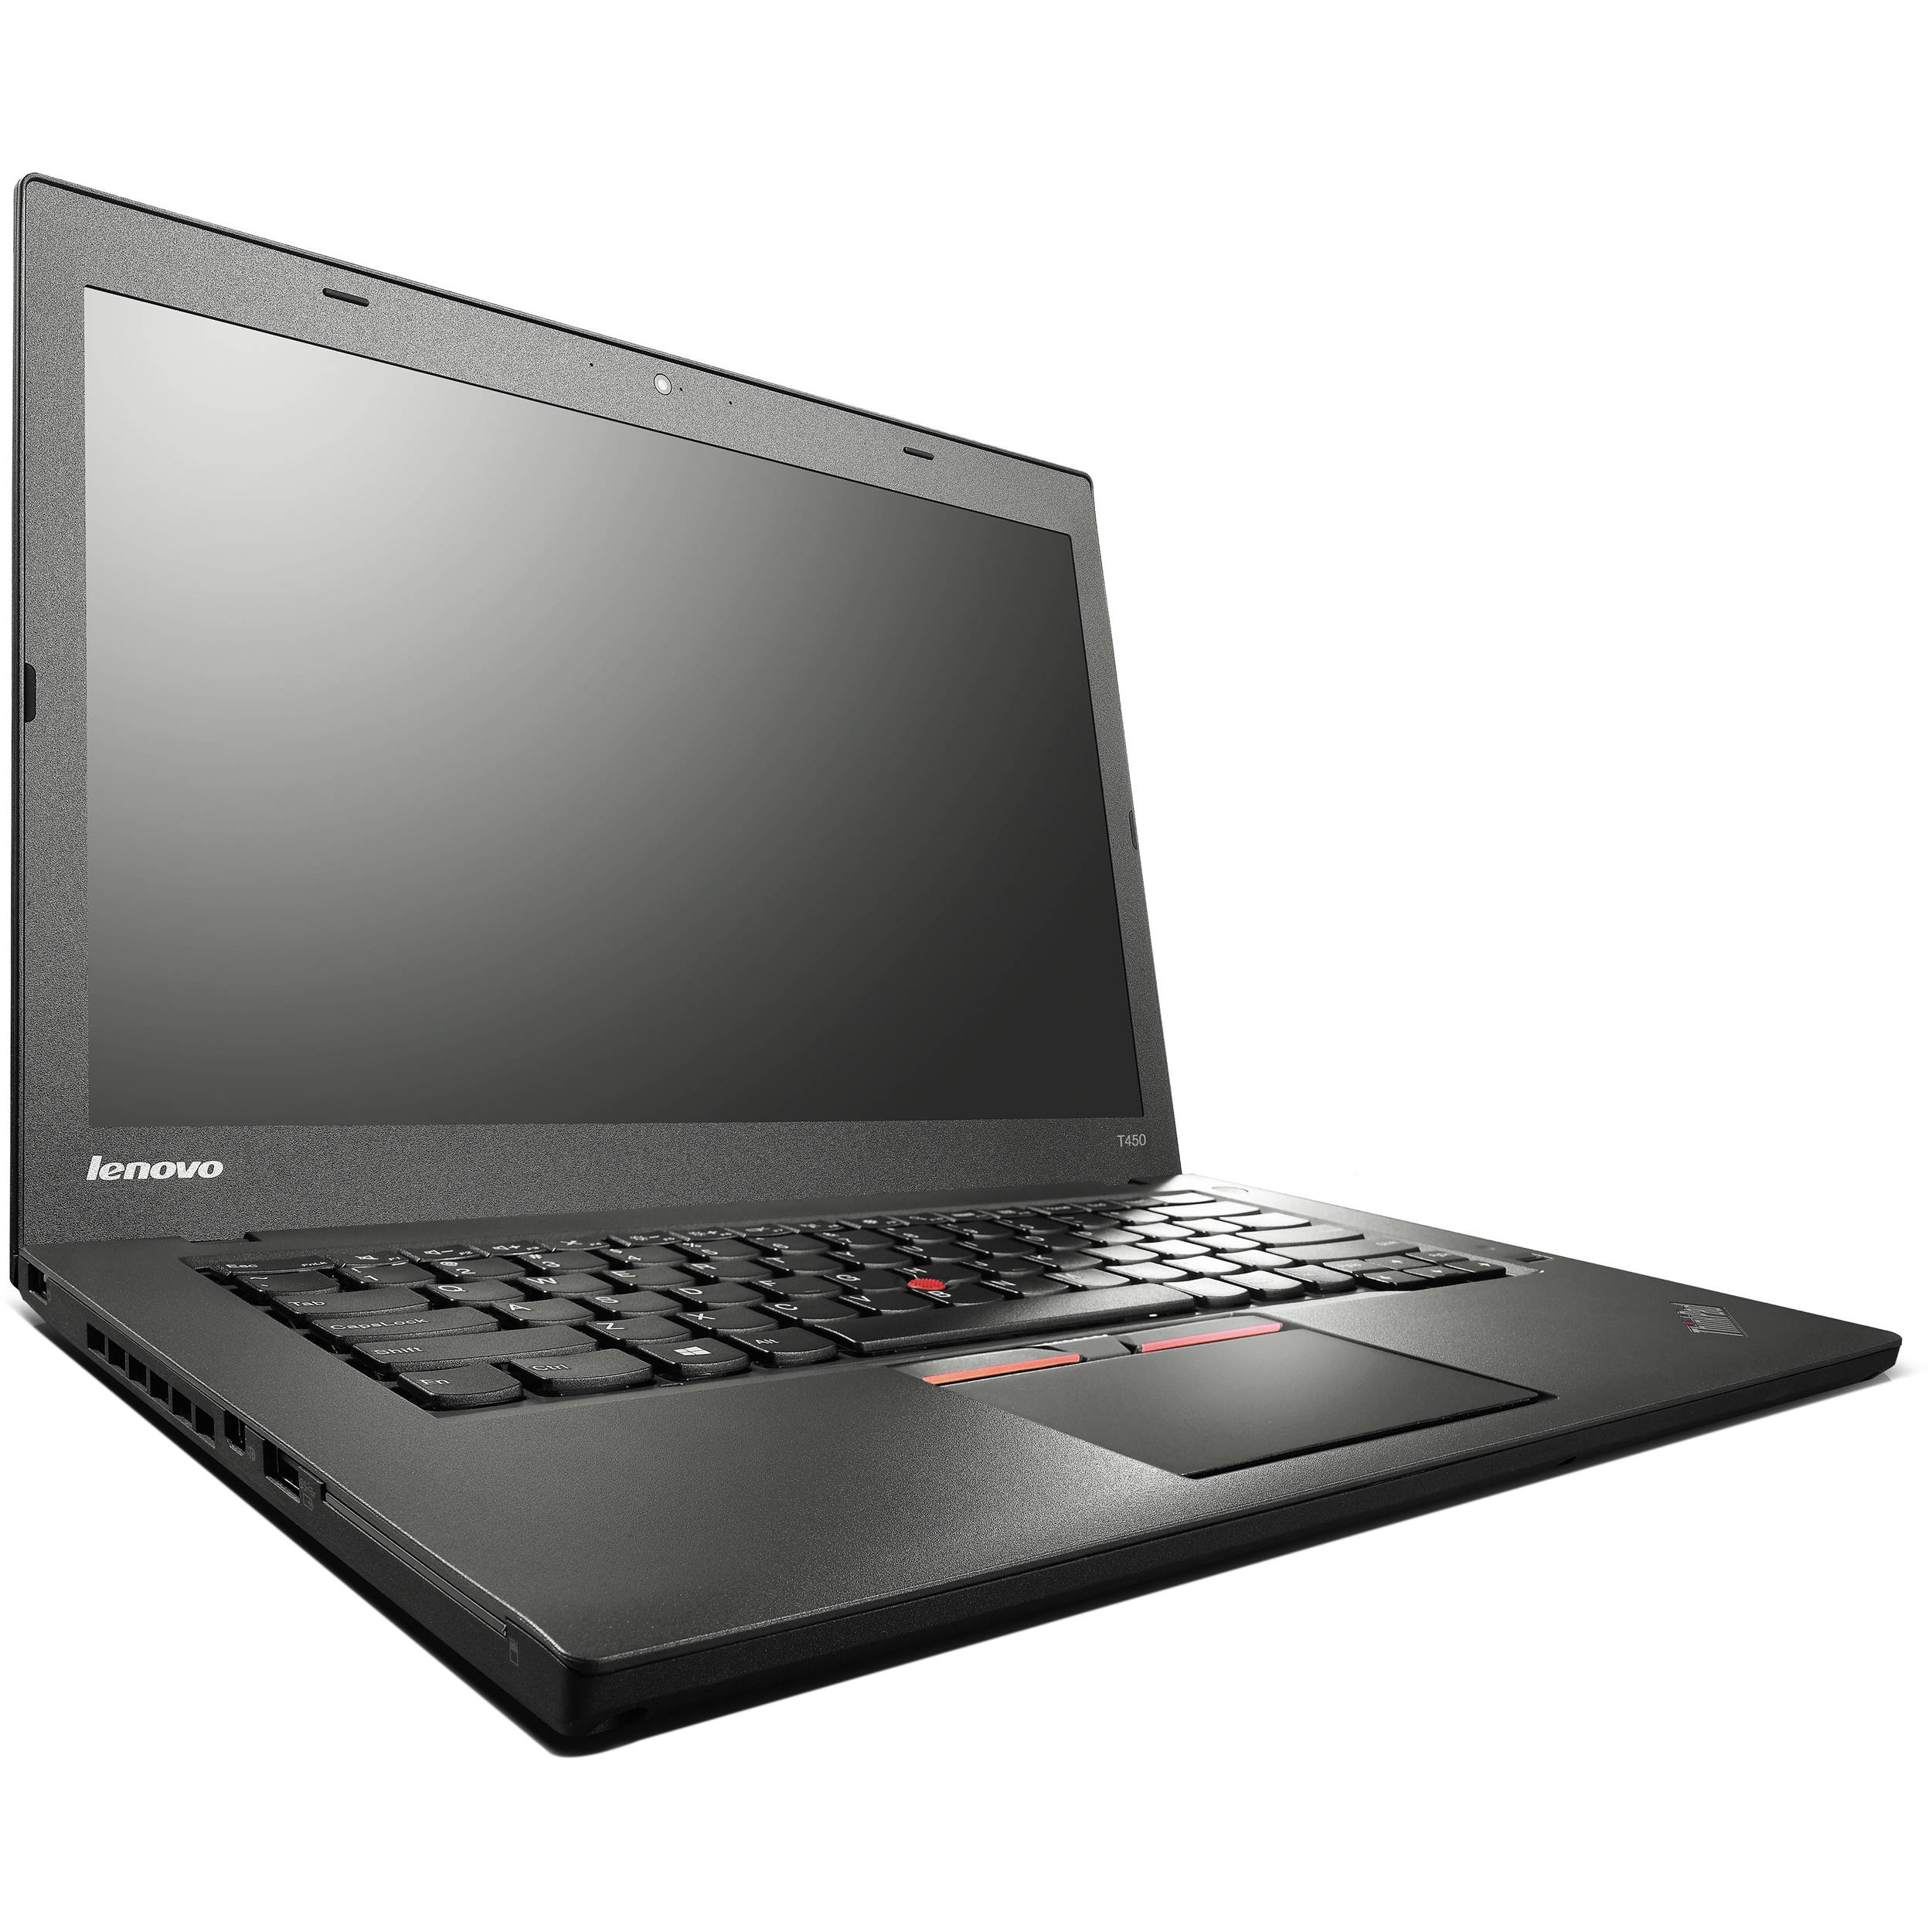 ThinkPad X1 Carbon 6th Gen Upgrade to this stunningly smart, stealth laptop built for the anywhere, any time workplace.